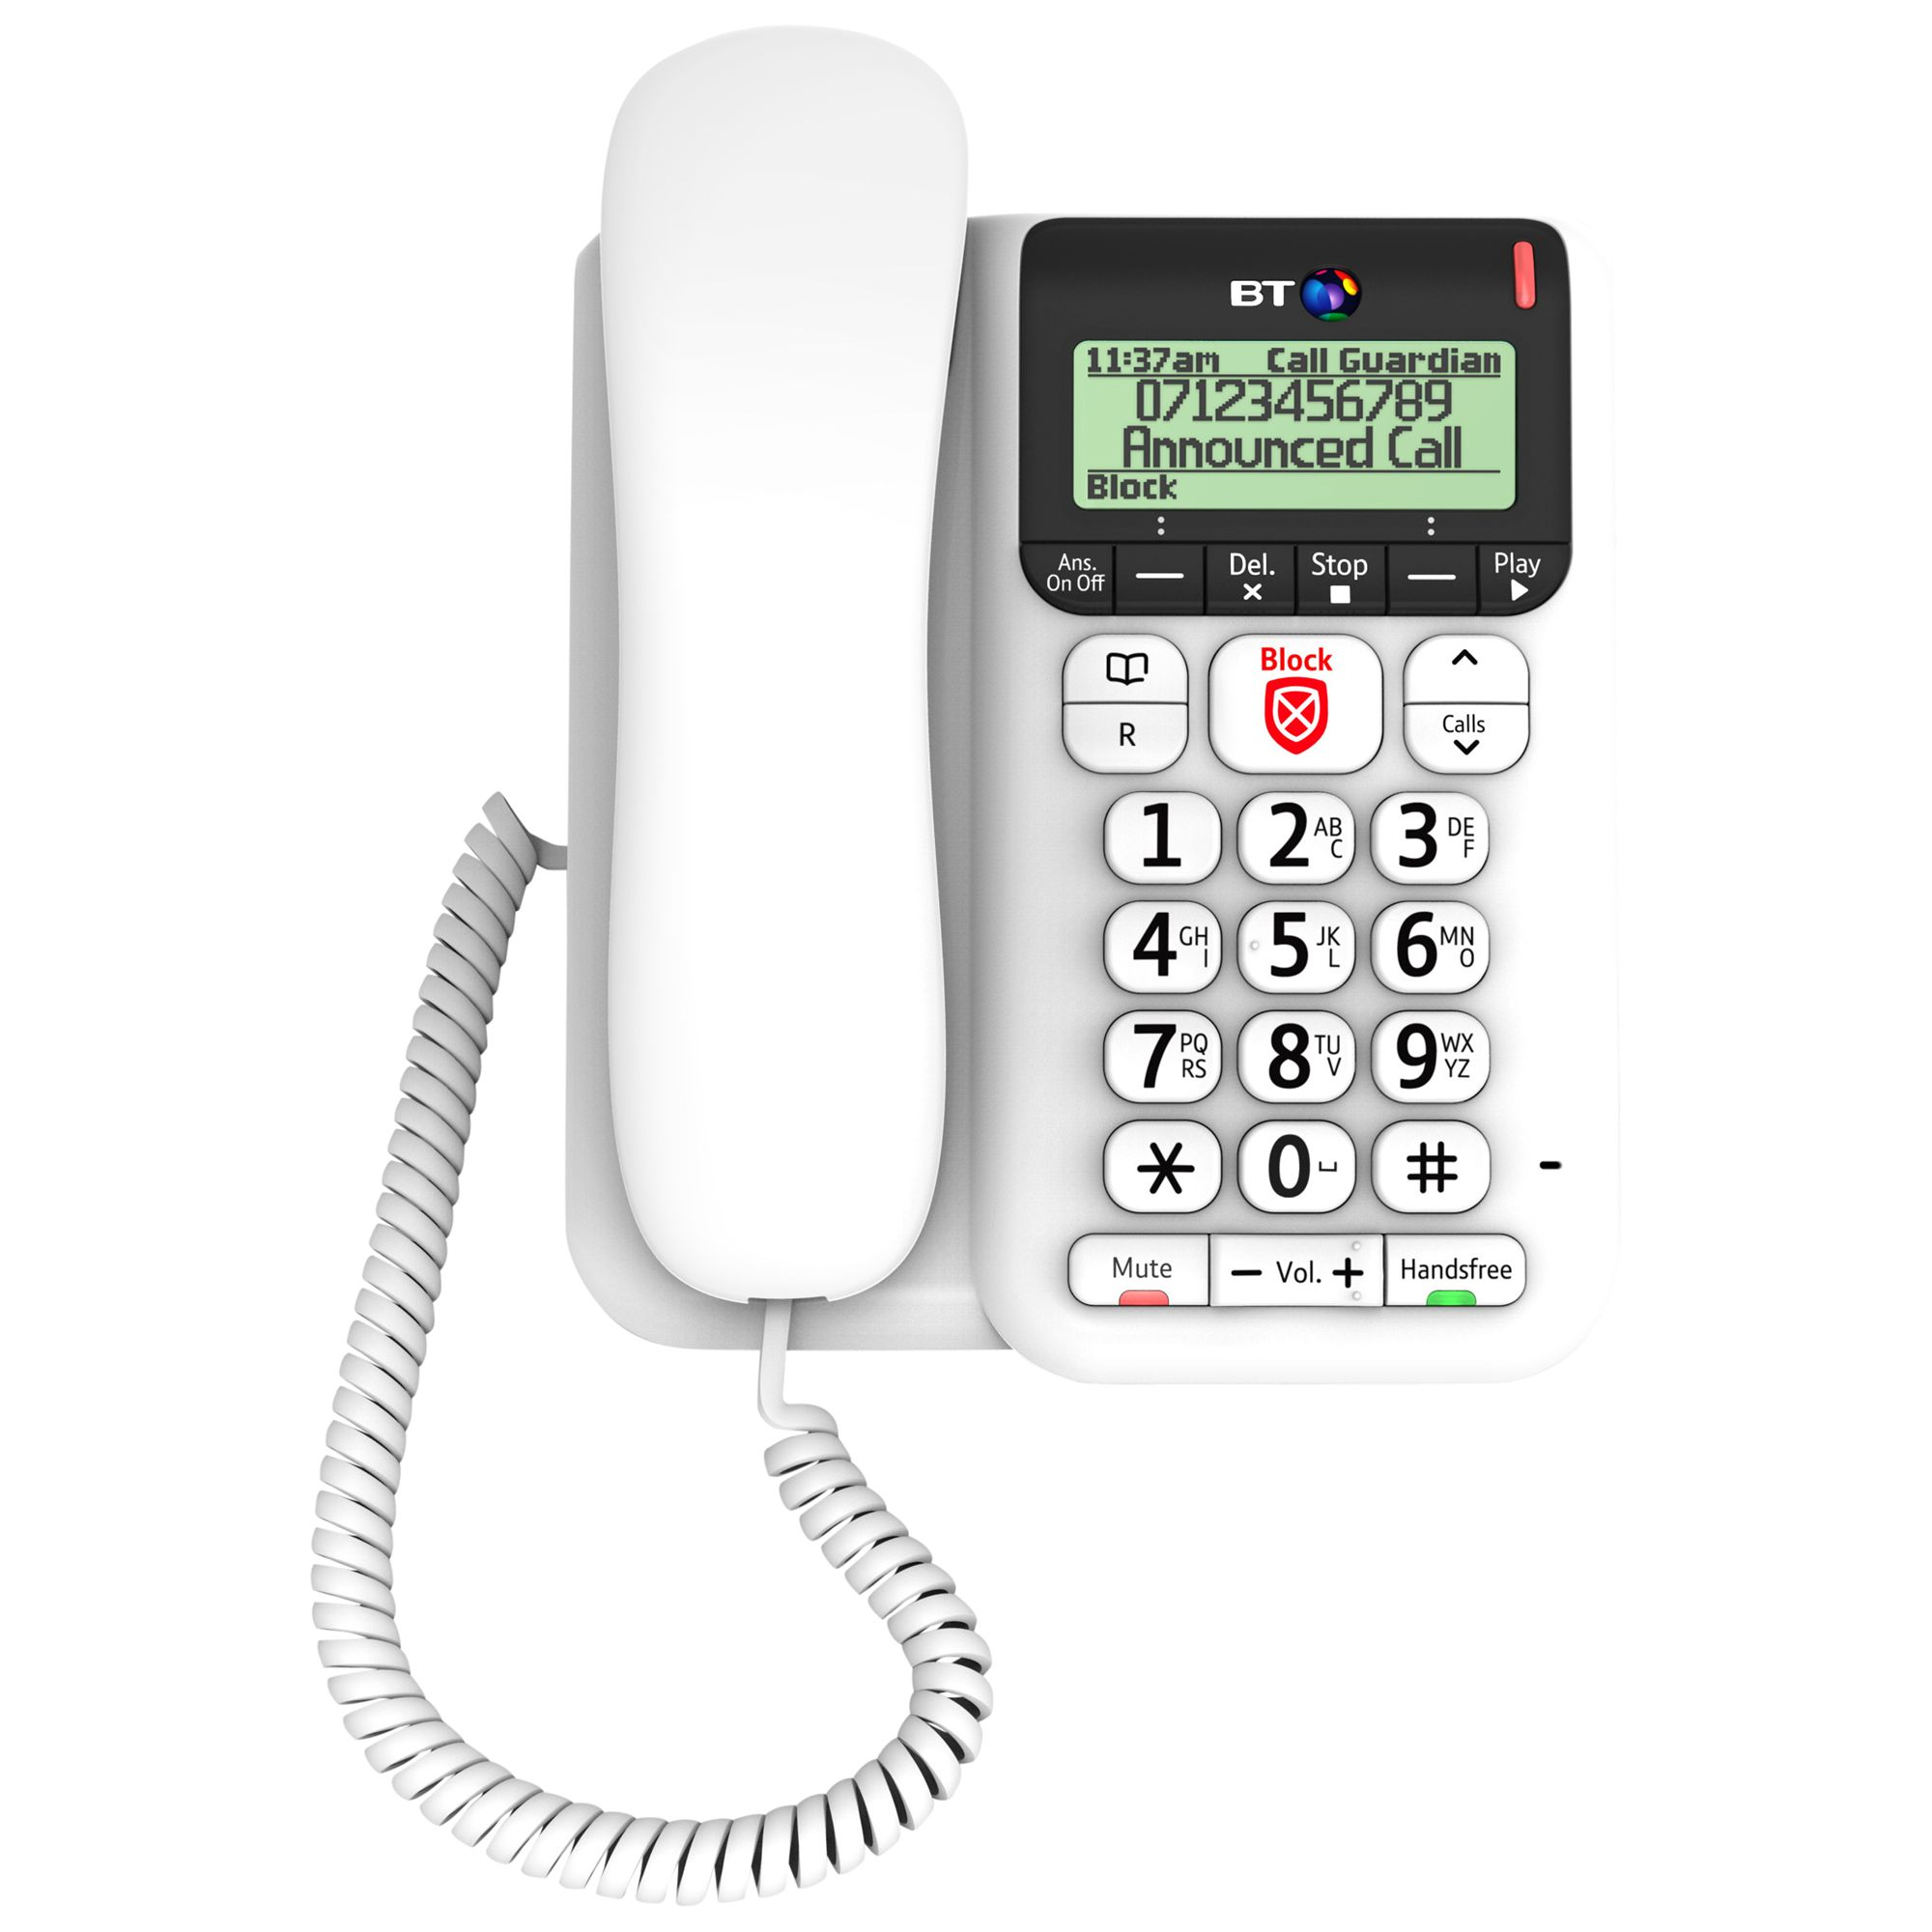 BT BT Décor 2600 Corded Telephone with Answering Machine & Nuisance Call Blocker, White